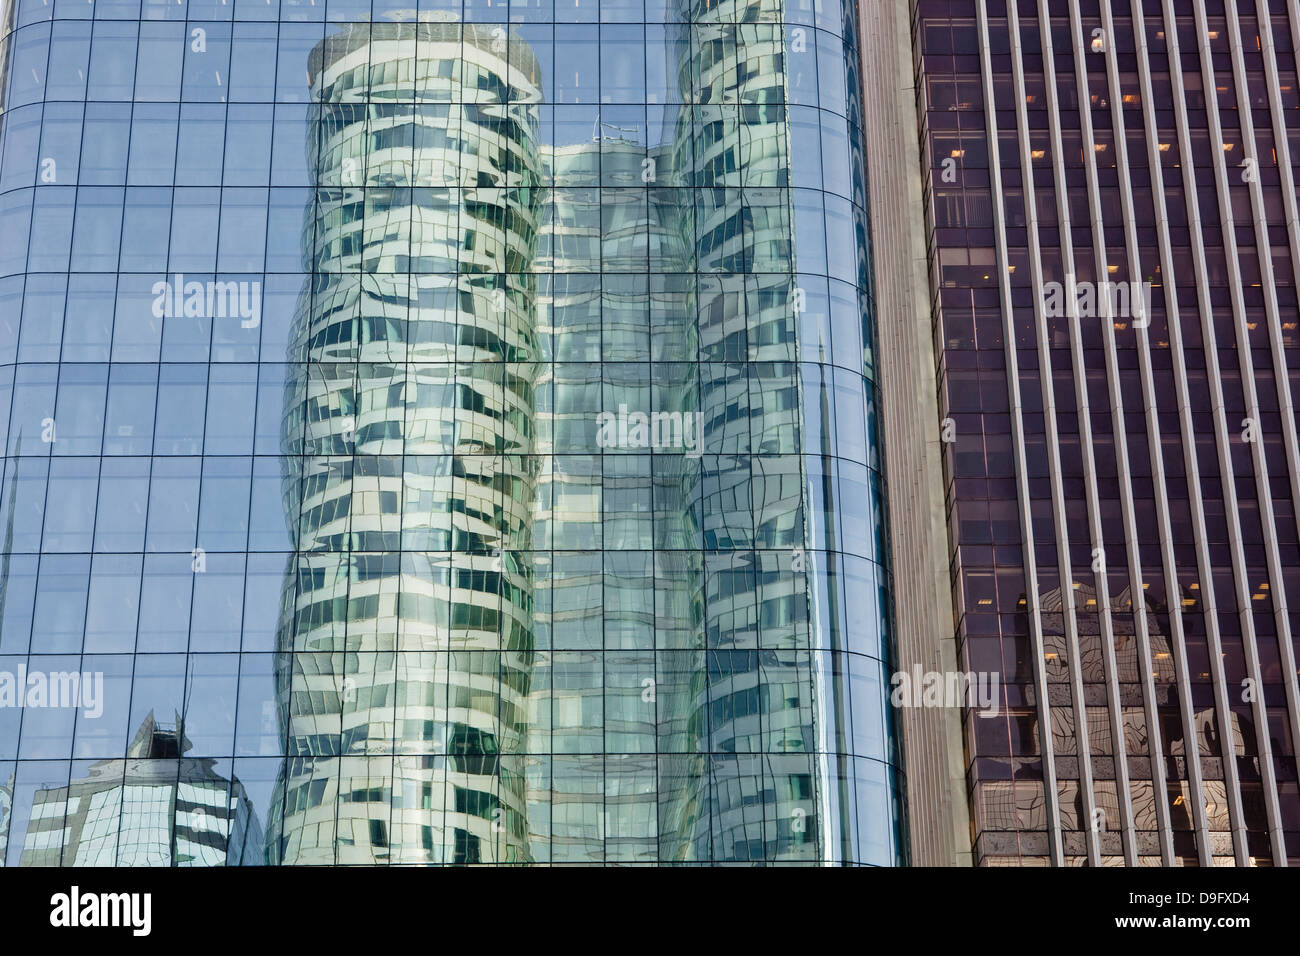 High rise office buildings in the La Defense district of Paris, France - Stock Image